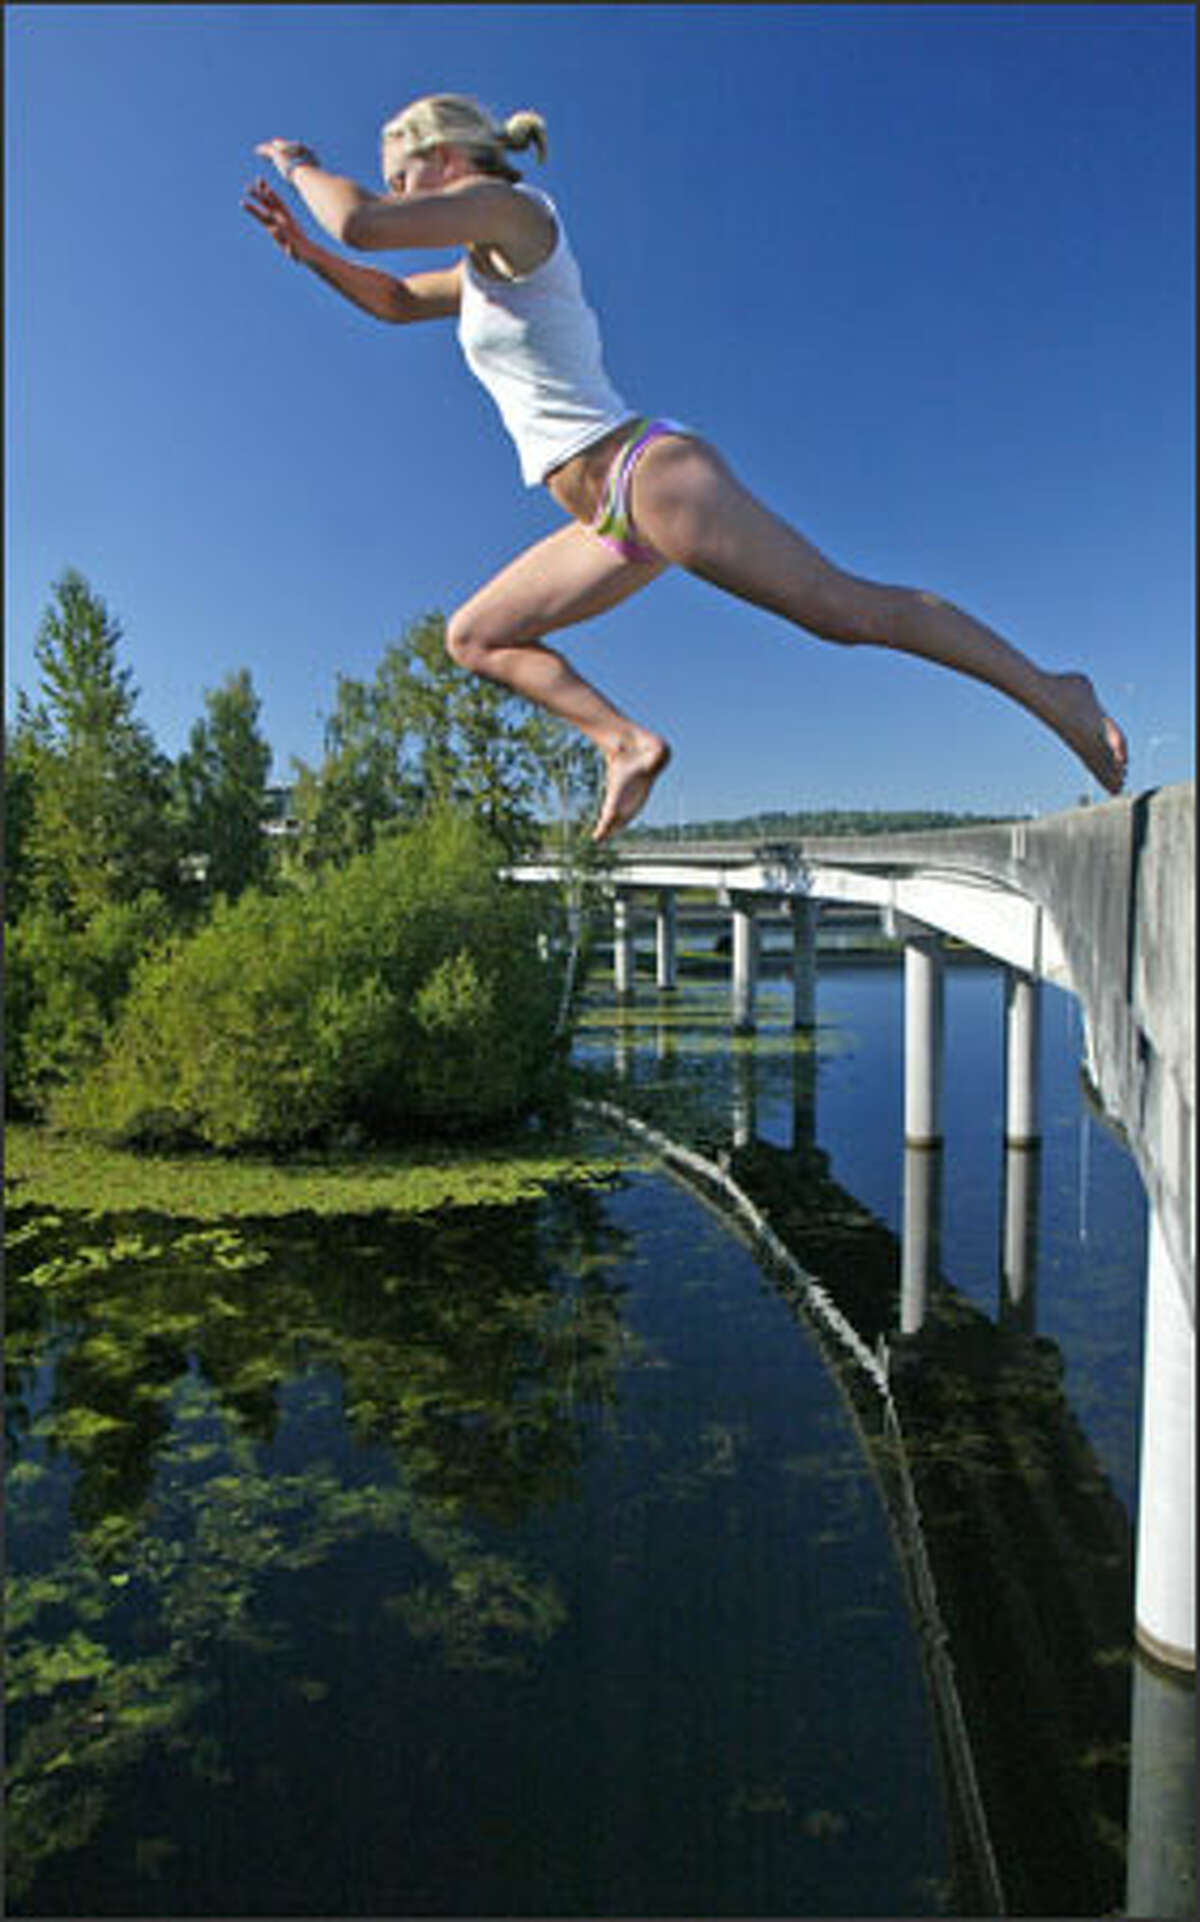 Alex Merrick takes a flying leap off a closed and unused section of the state Route 520 Bridge into the cool water of the Washington Park Arboretum below. The bridge is a perennially popular spot for people seeking relief from the heat after summer officially arrives.